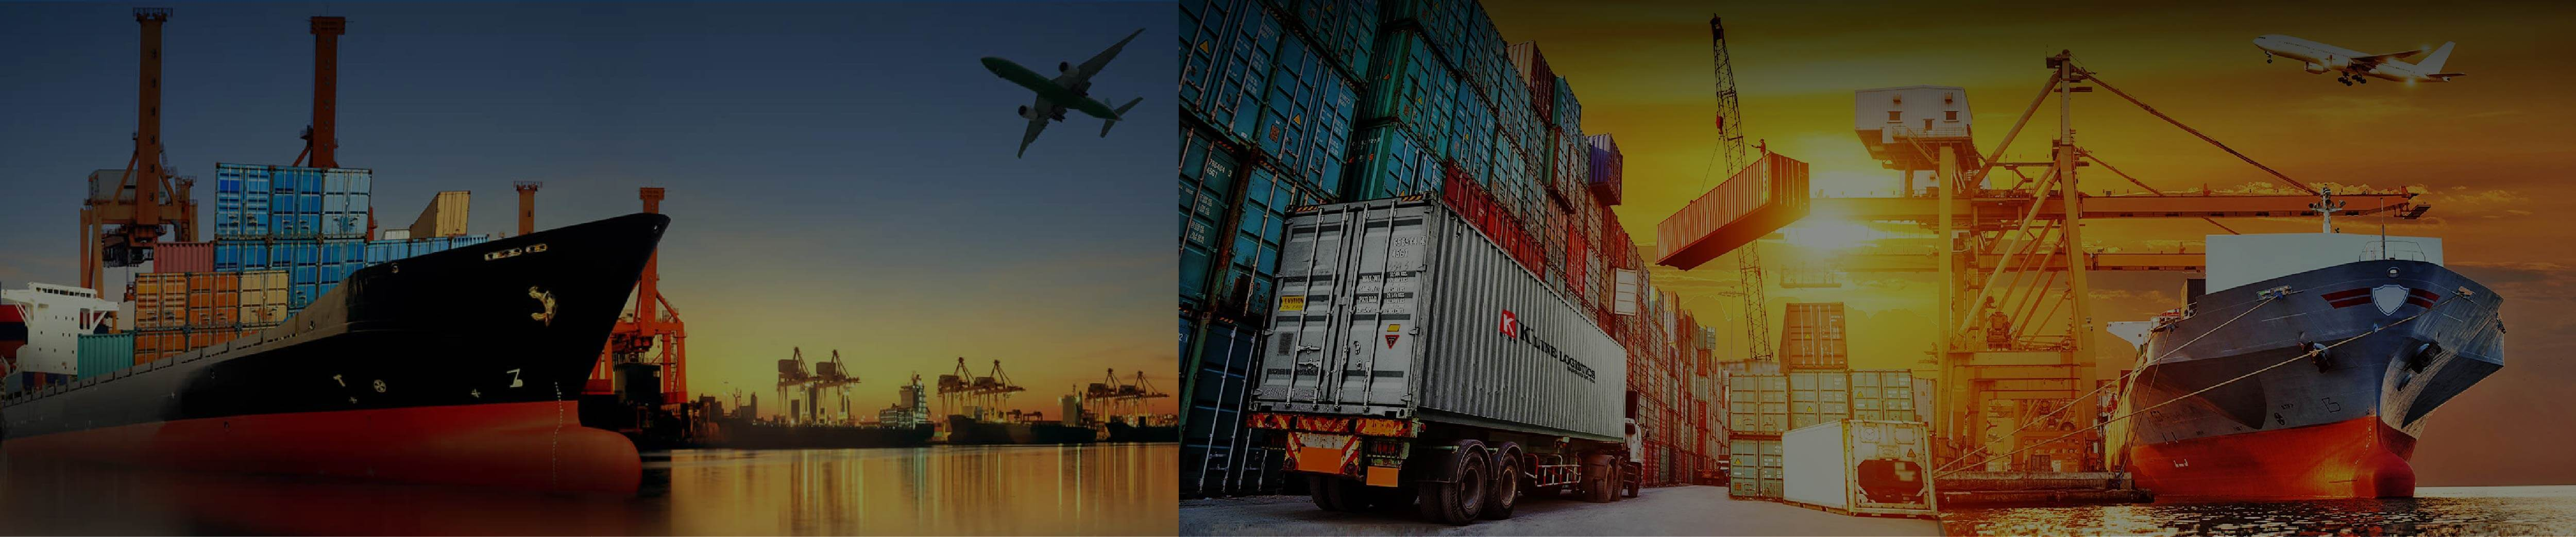 Diploma in Supply Chain Management in Mumbai | Diploma Logistics